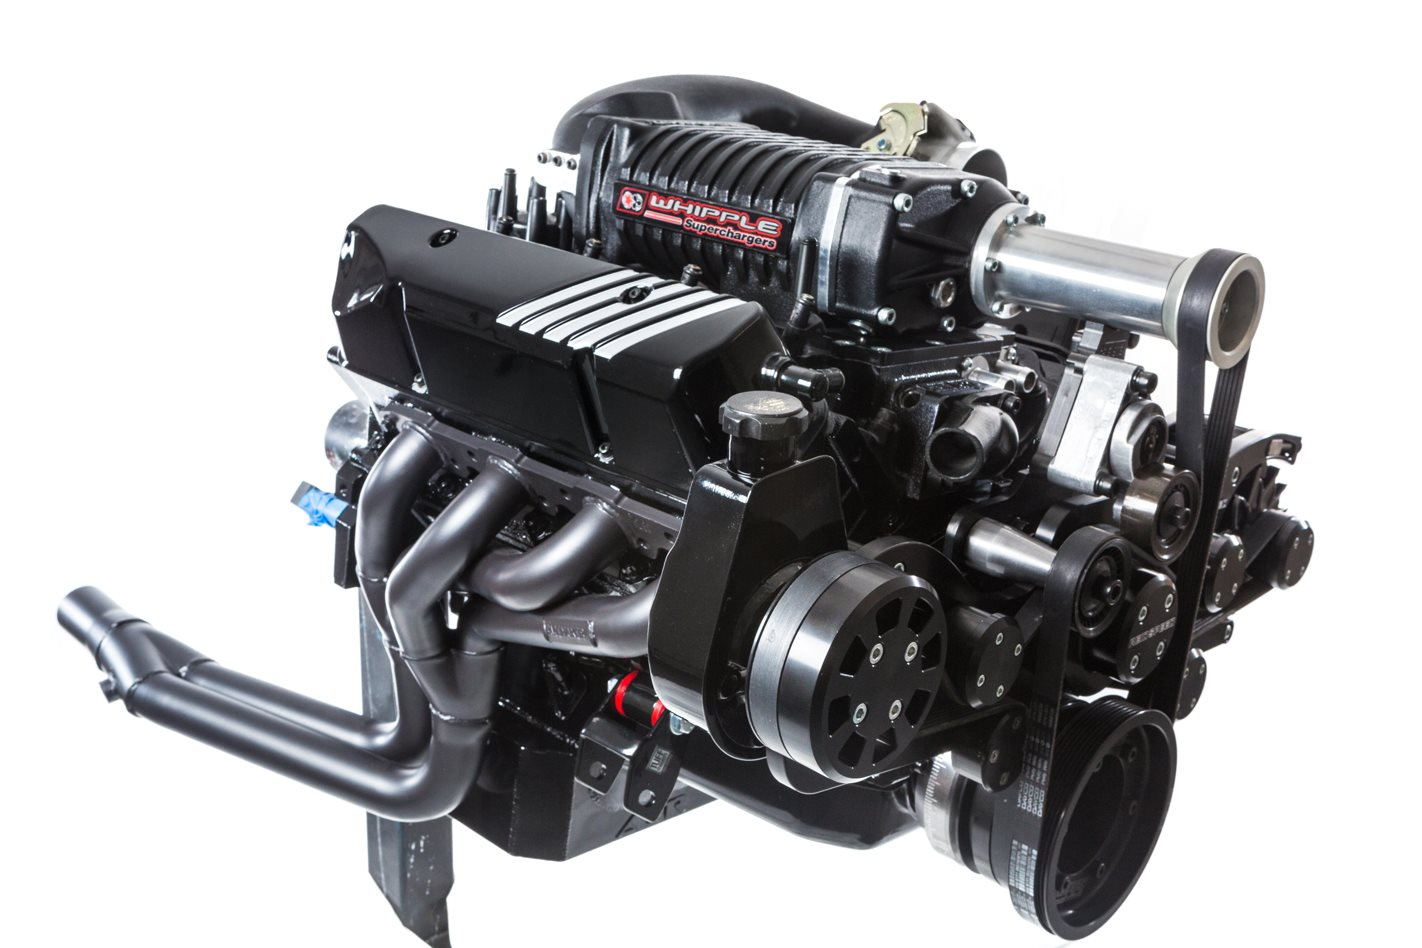 WHIPPLE SUPERCHARGED HOLDEN 355 AT POWERHOUSE ENGINES - VIDEO